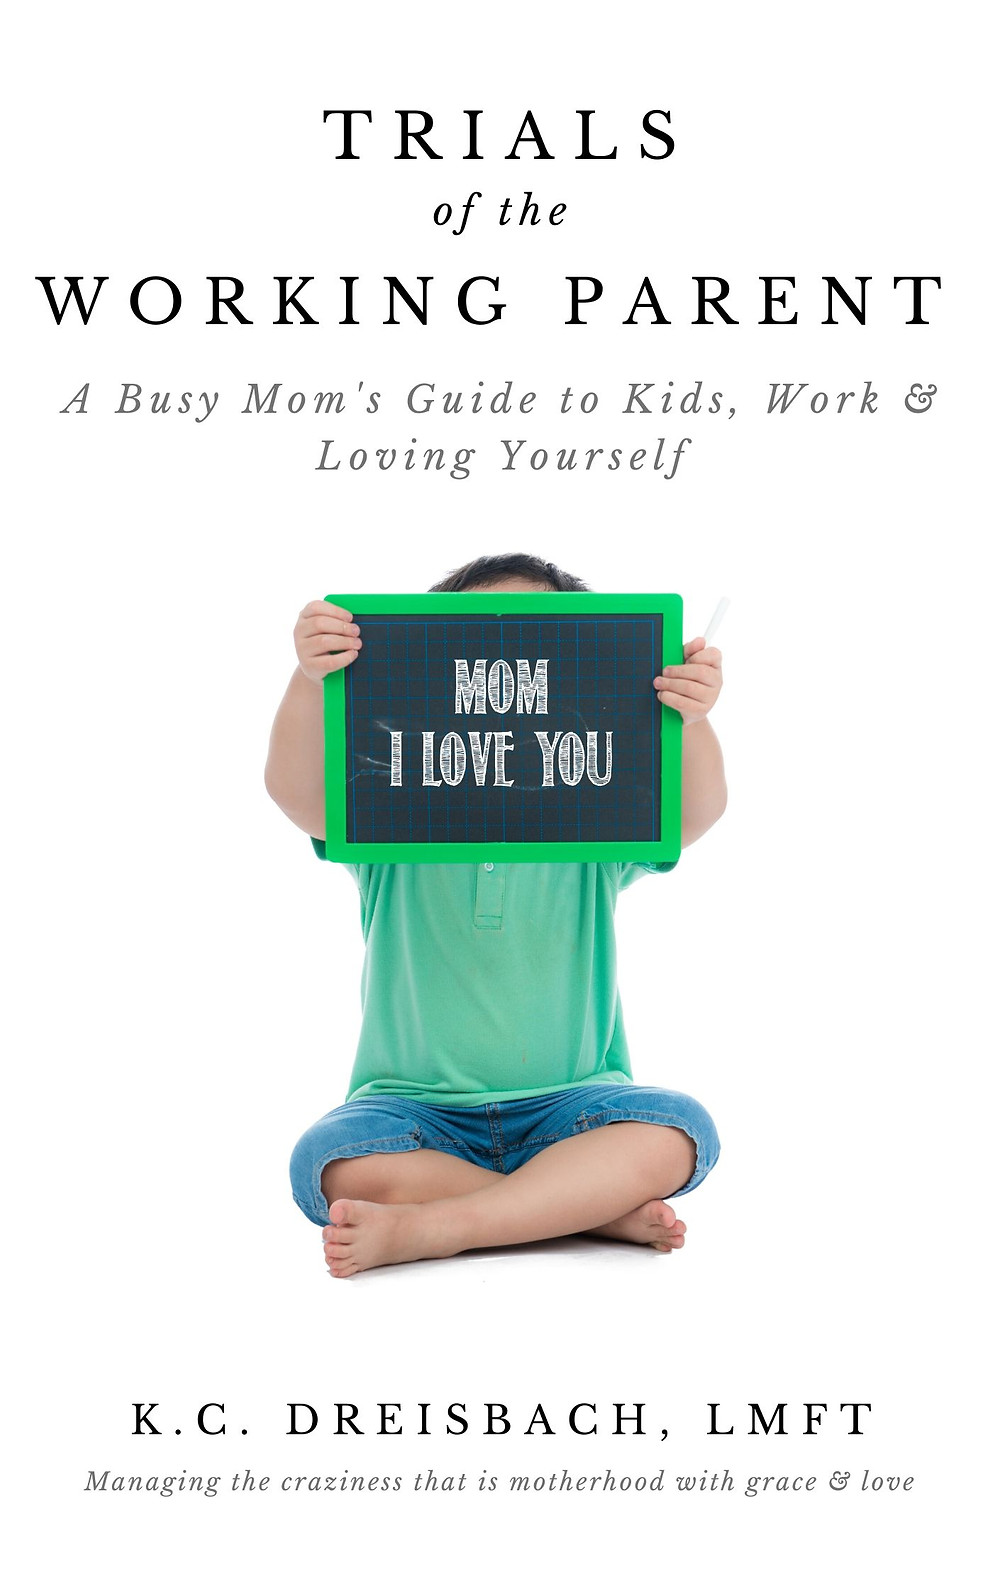 Trials of the Working Parent: A Busy Mom's Guide to Kids, Work & Loving Yourself